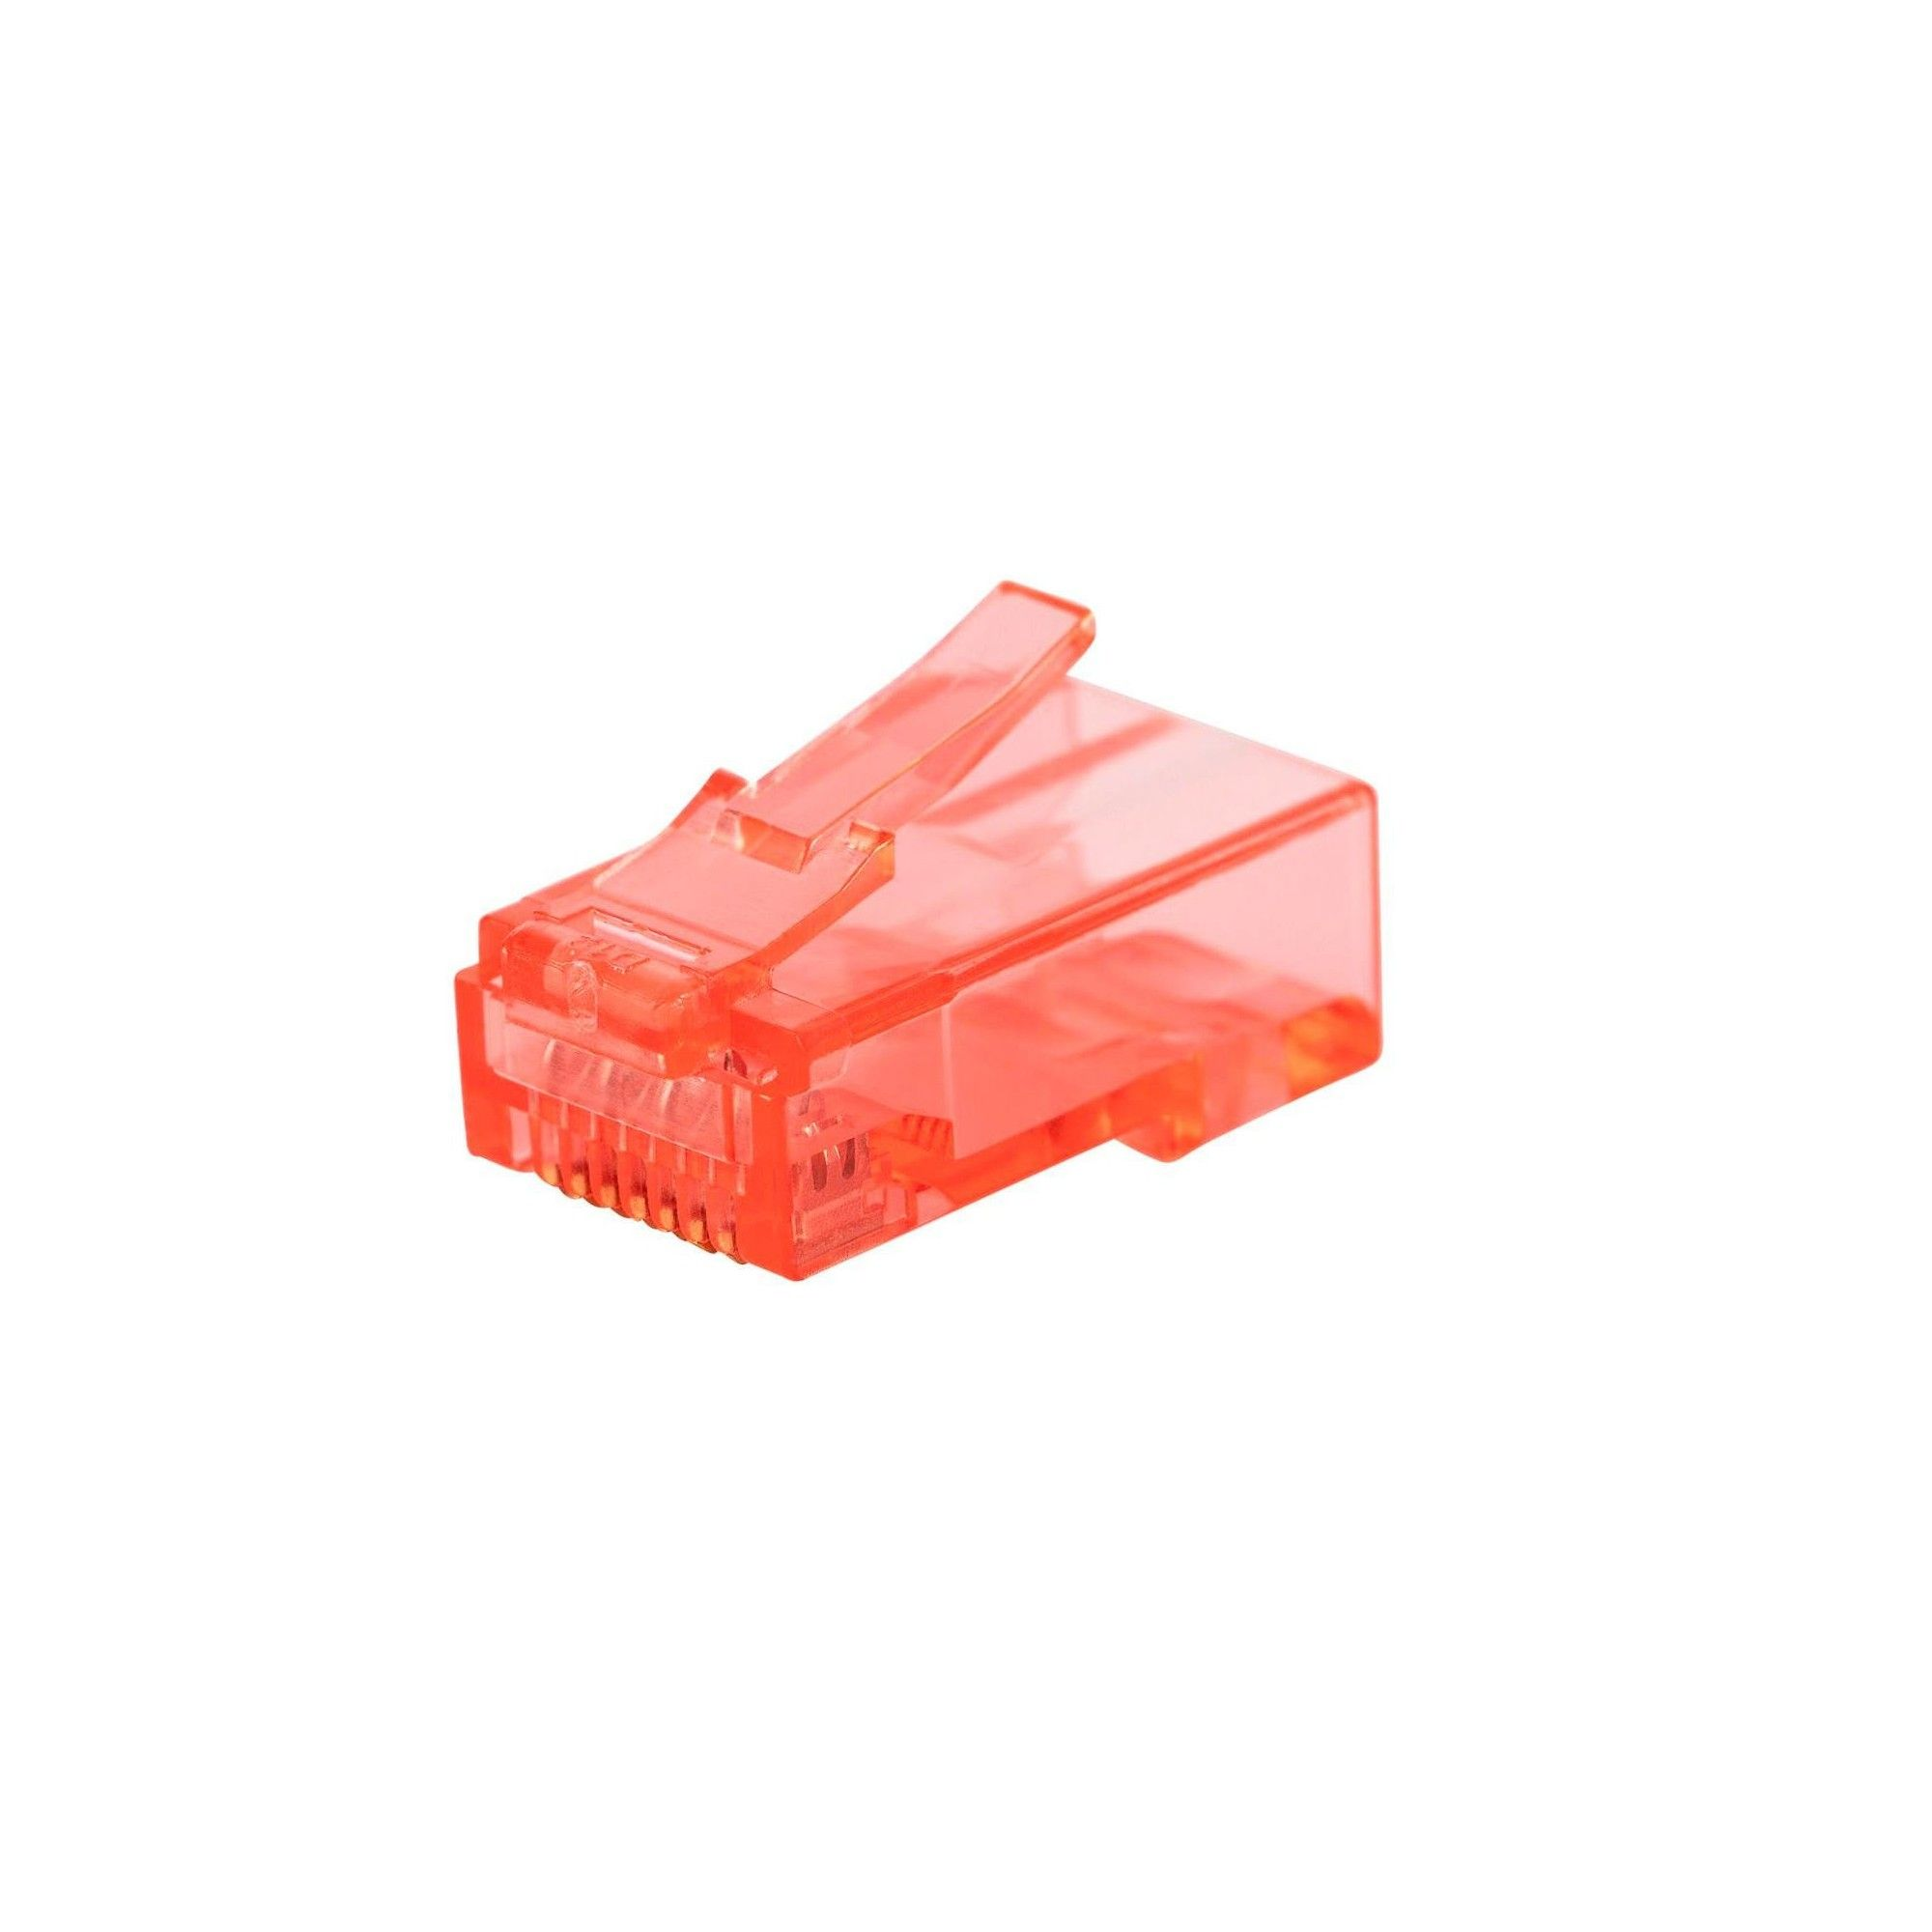 Monoprice 8P8C RJ45 Plug W// Inserts for Solid Cat6 Ethernet Cable 100 pcs//pack